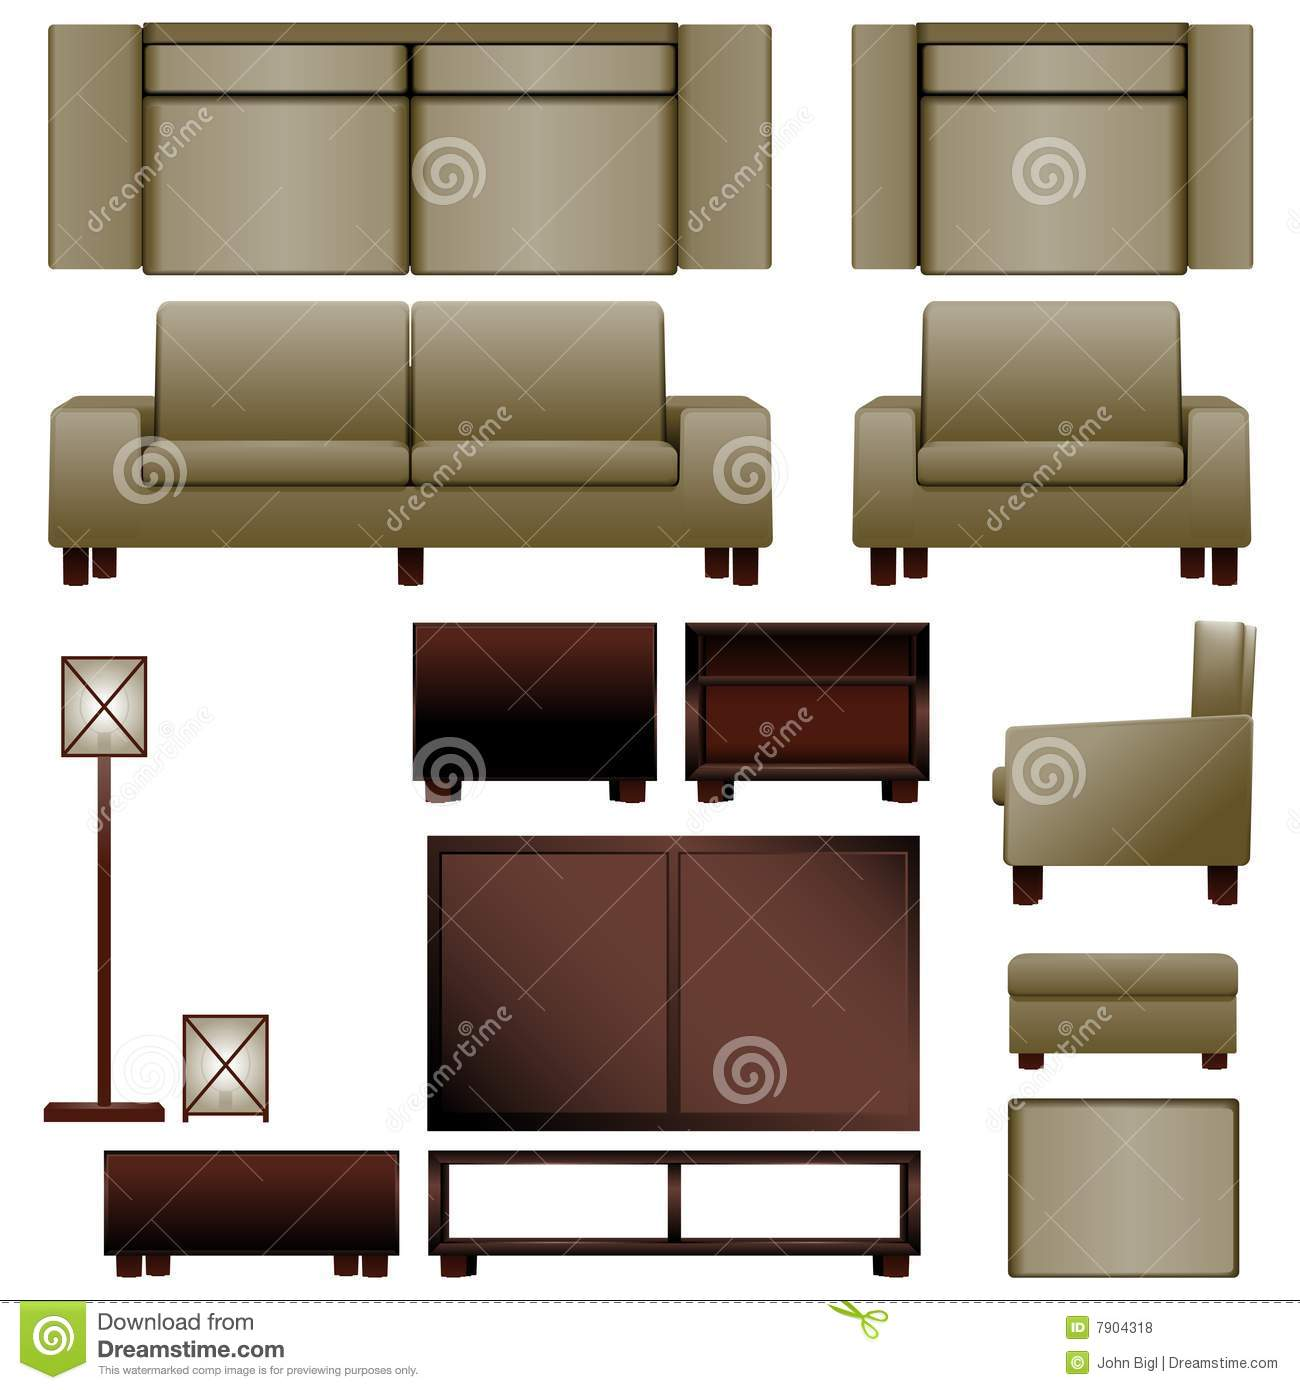 Modern living room furniture - Modern Living Room Furniture Royalty Free Stock Photos - Image